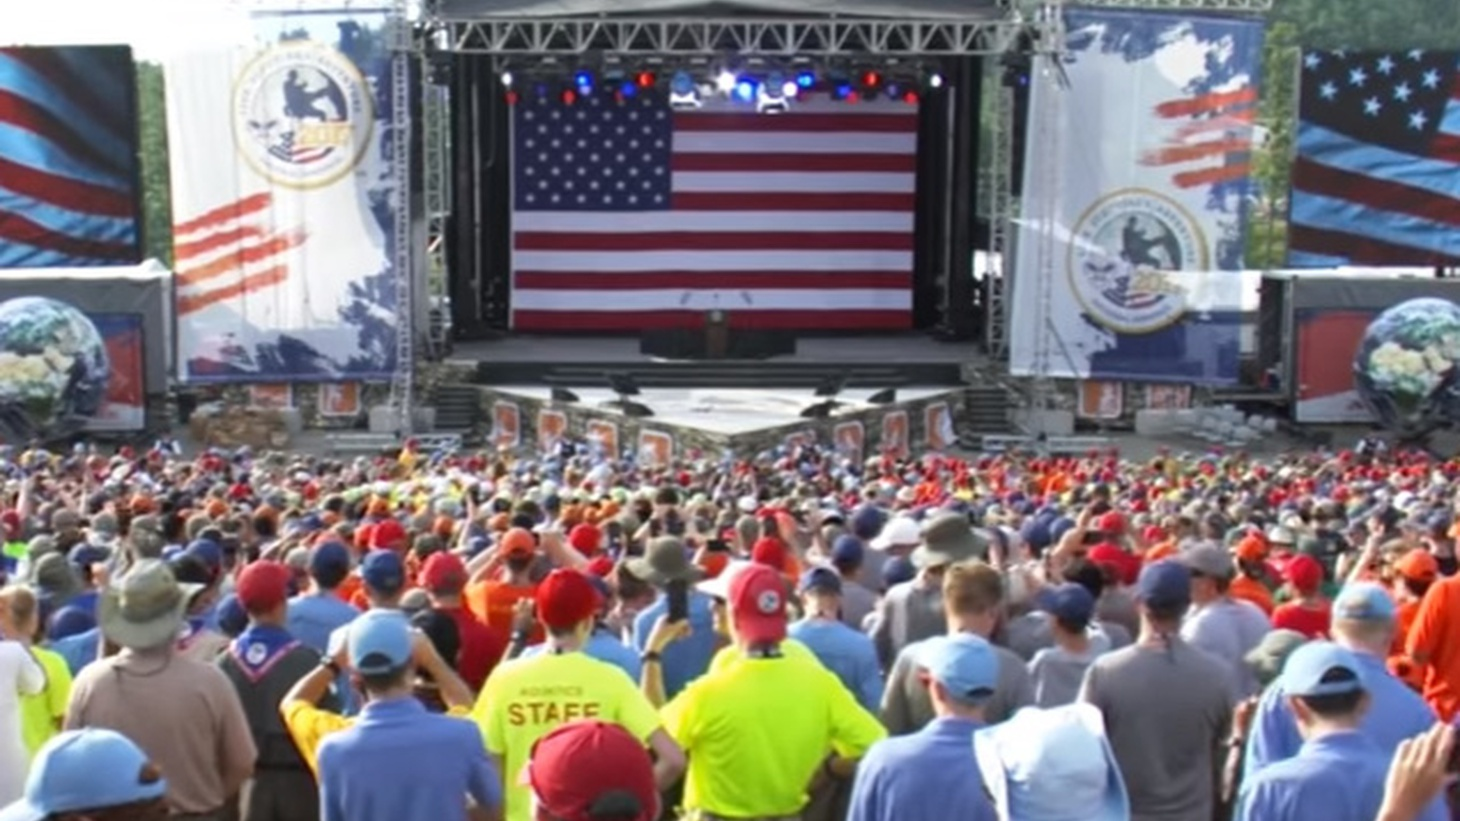 Last night in Glen Jean, West Virginia, President Trump addressed this year's National Boy Scout Jamboree. After establishing his bona fides, the president trampled on the tradition of the event by bringing up politics.